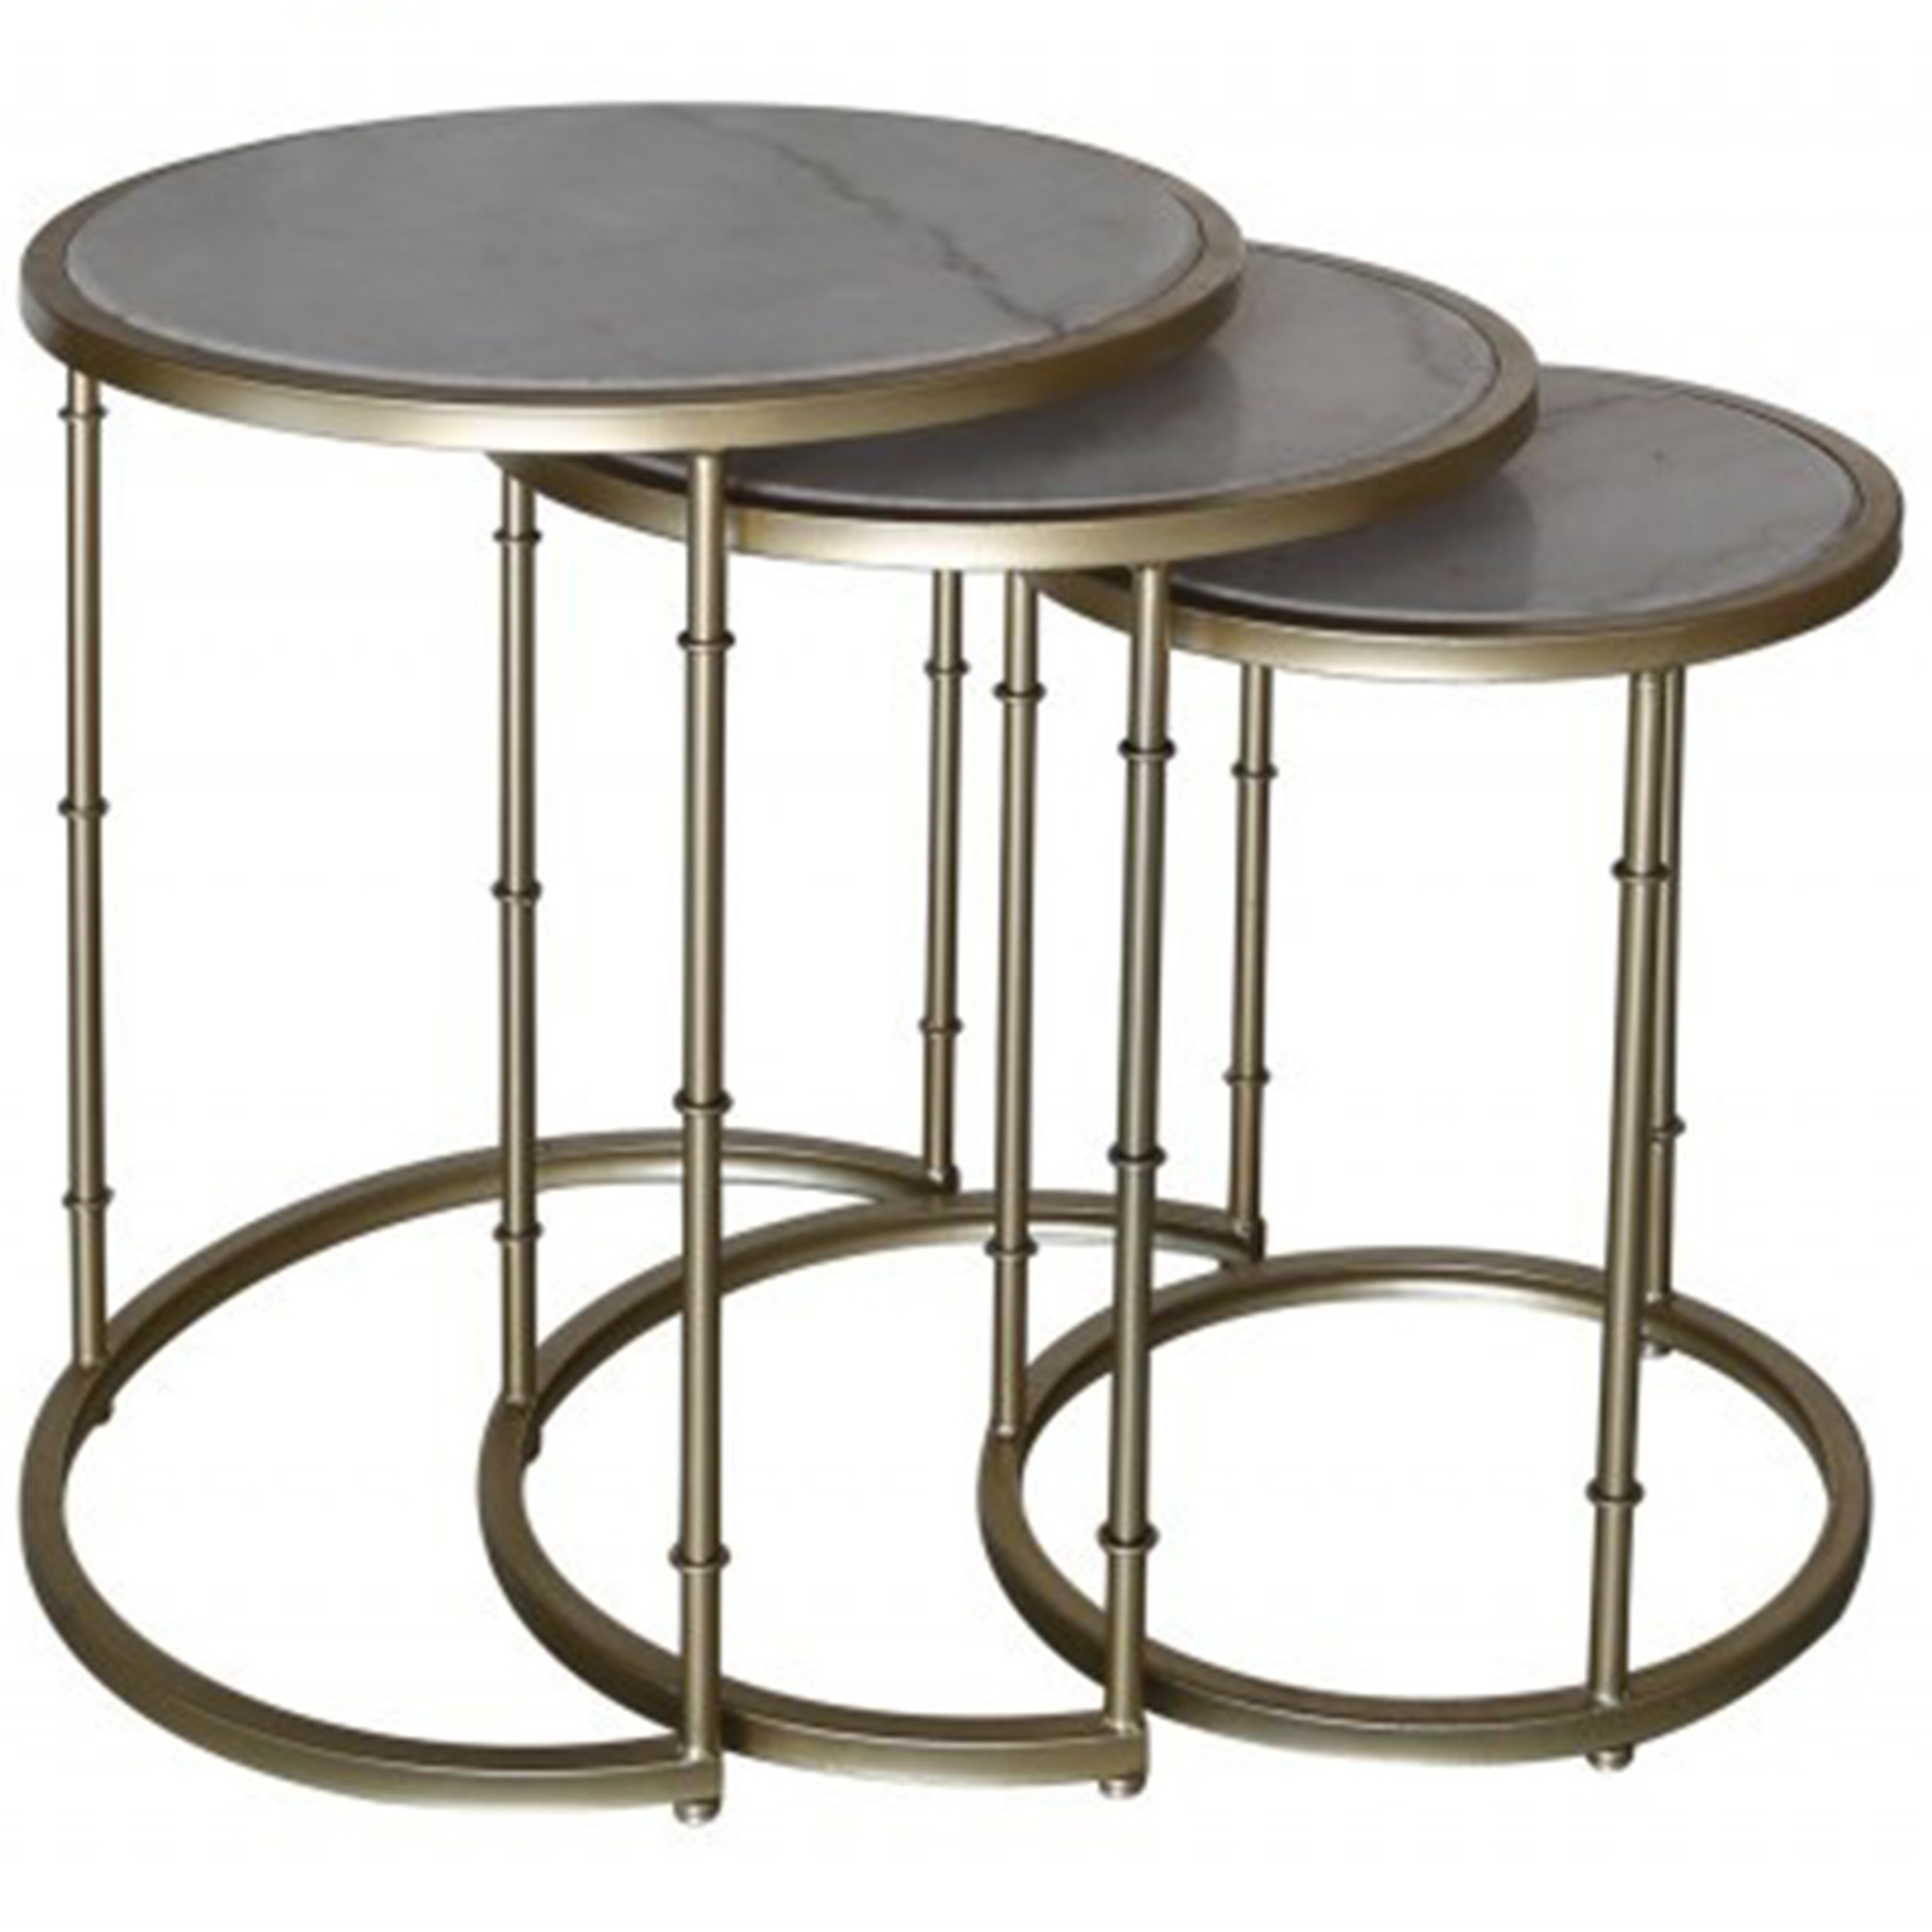 Metal Marble Nest Of Tables Contemporary Modern Furniture From Homesdirect 365 Uk